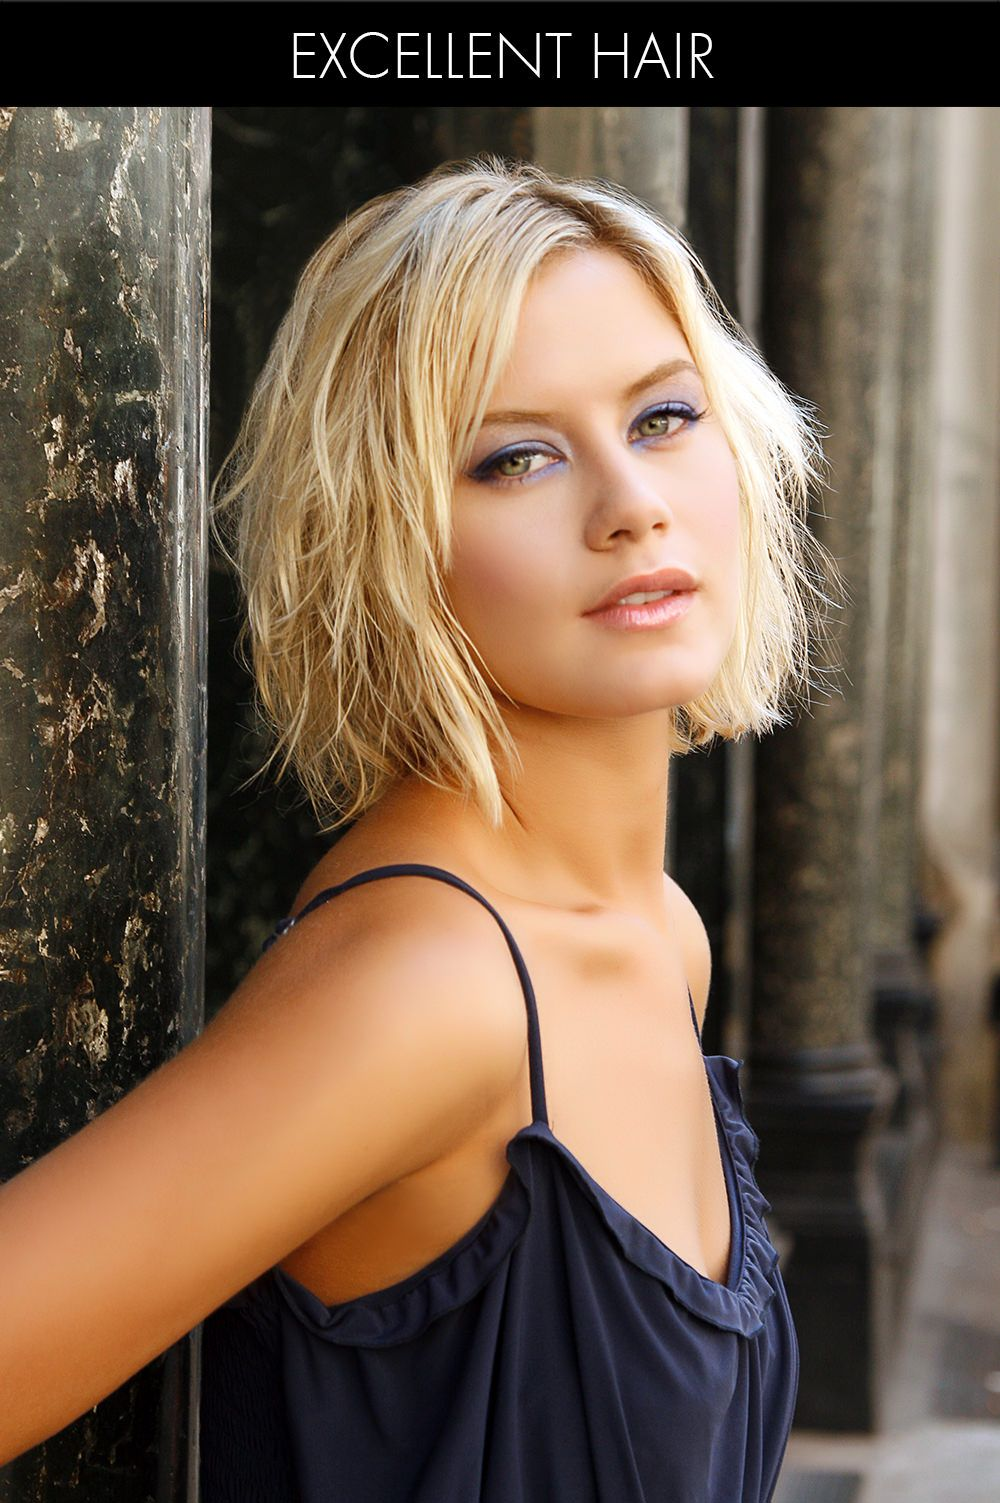 Undone Short Hairstyle For Fine Hair Short Hair  Pixie Cuts - How to style fine thin hair